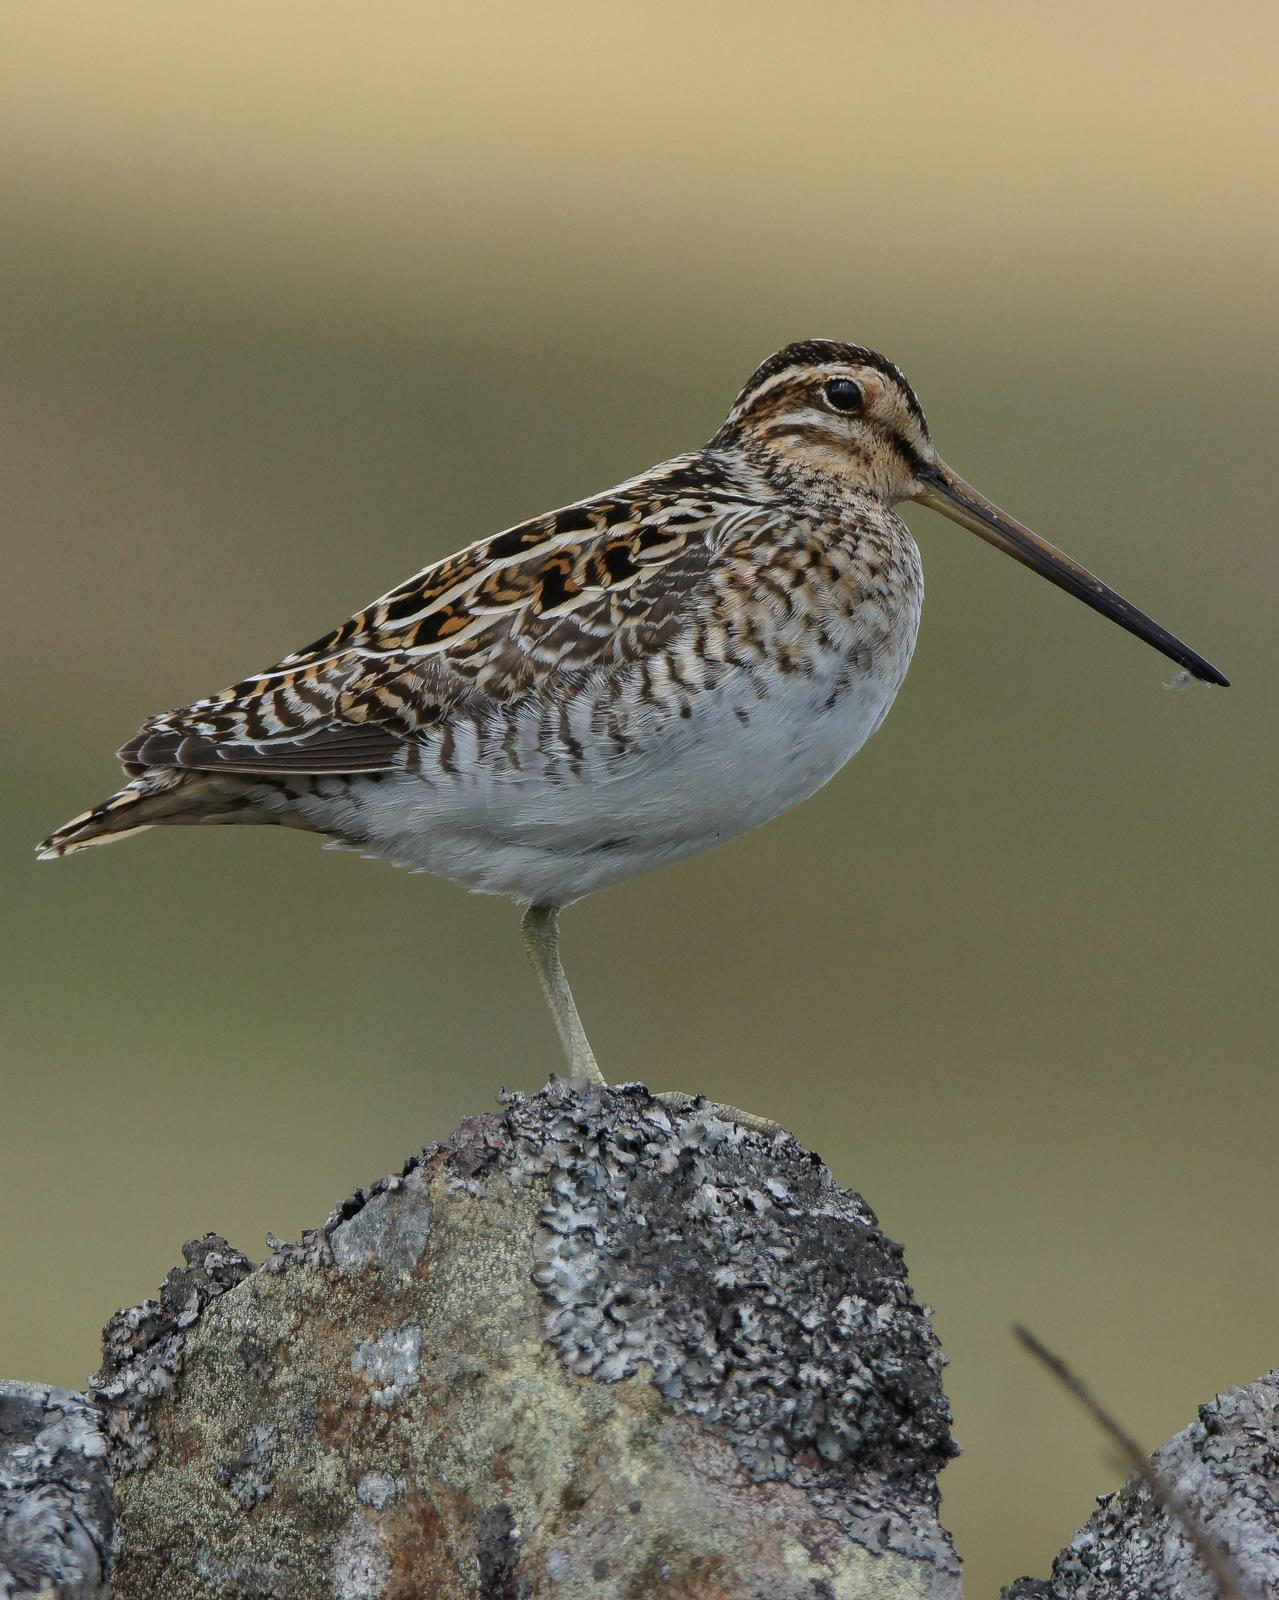 Common Snipe Photo by Steve Percival